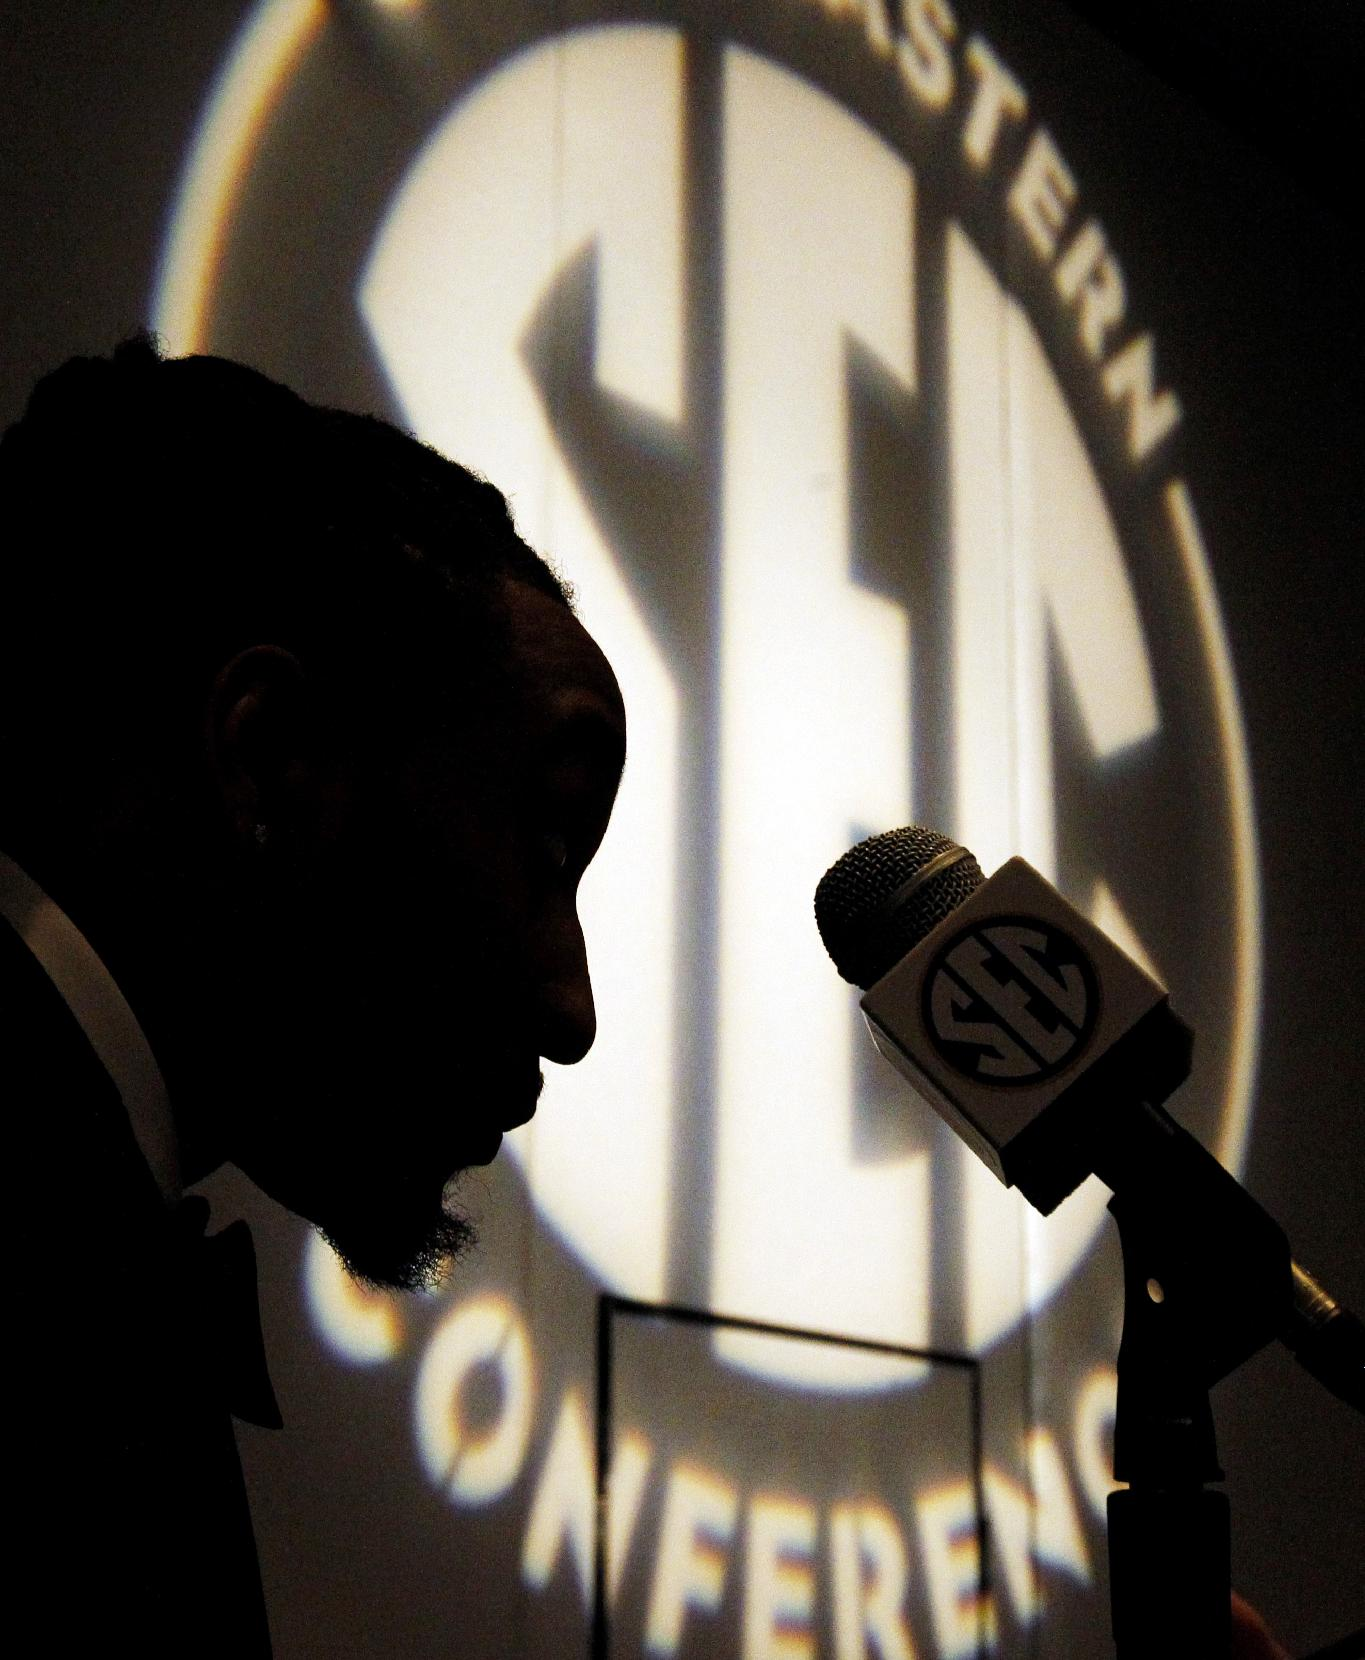 Arkansas safety Alan Turner speaks to the media at the Southeastern Conference NCAA college football media days, Wednesday, July 16, 2014, in Hoover, Ala